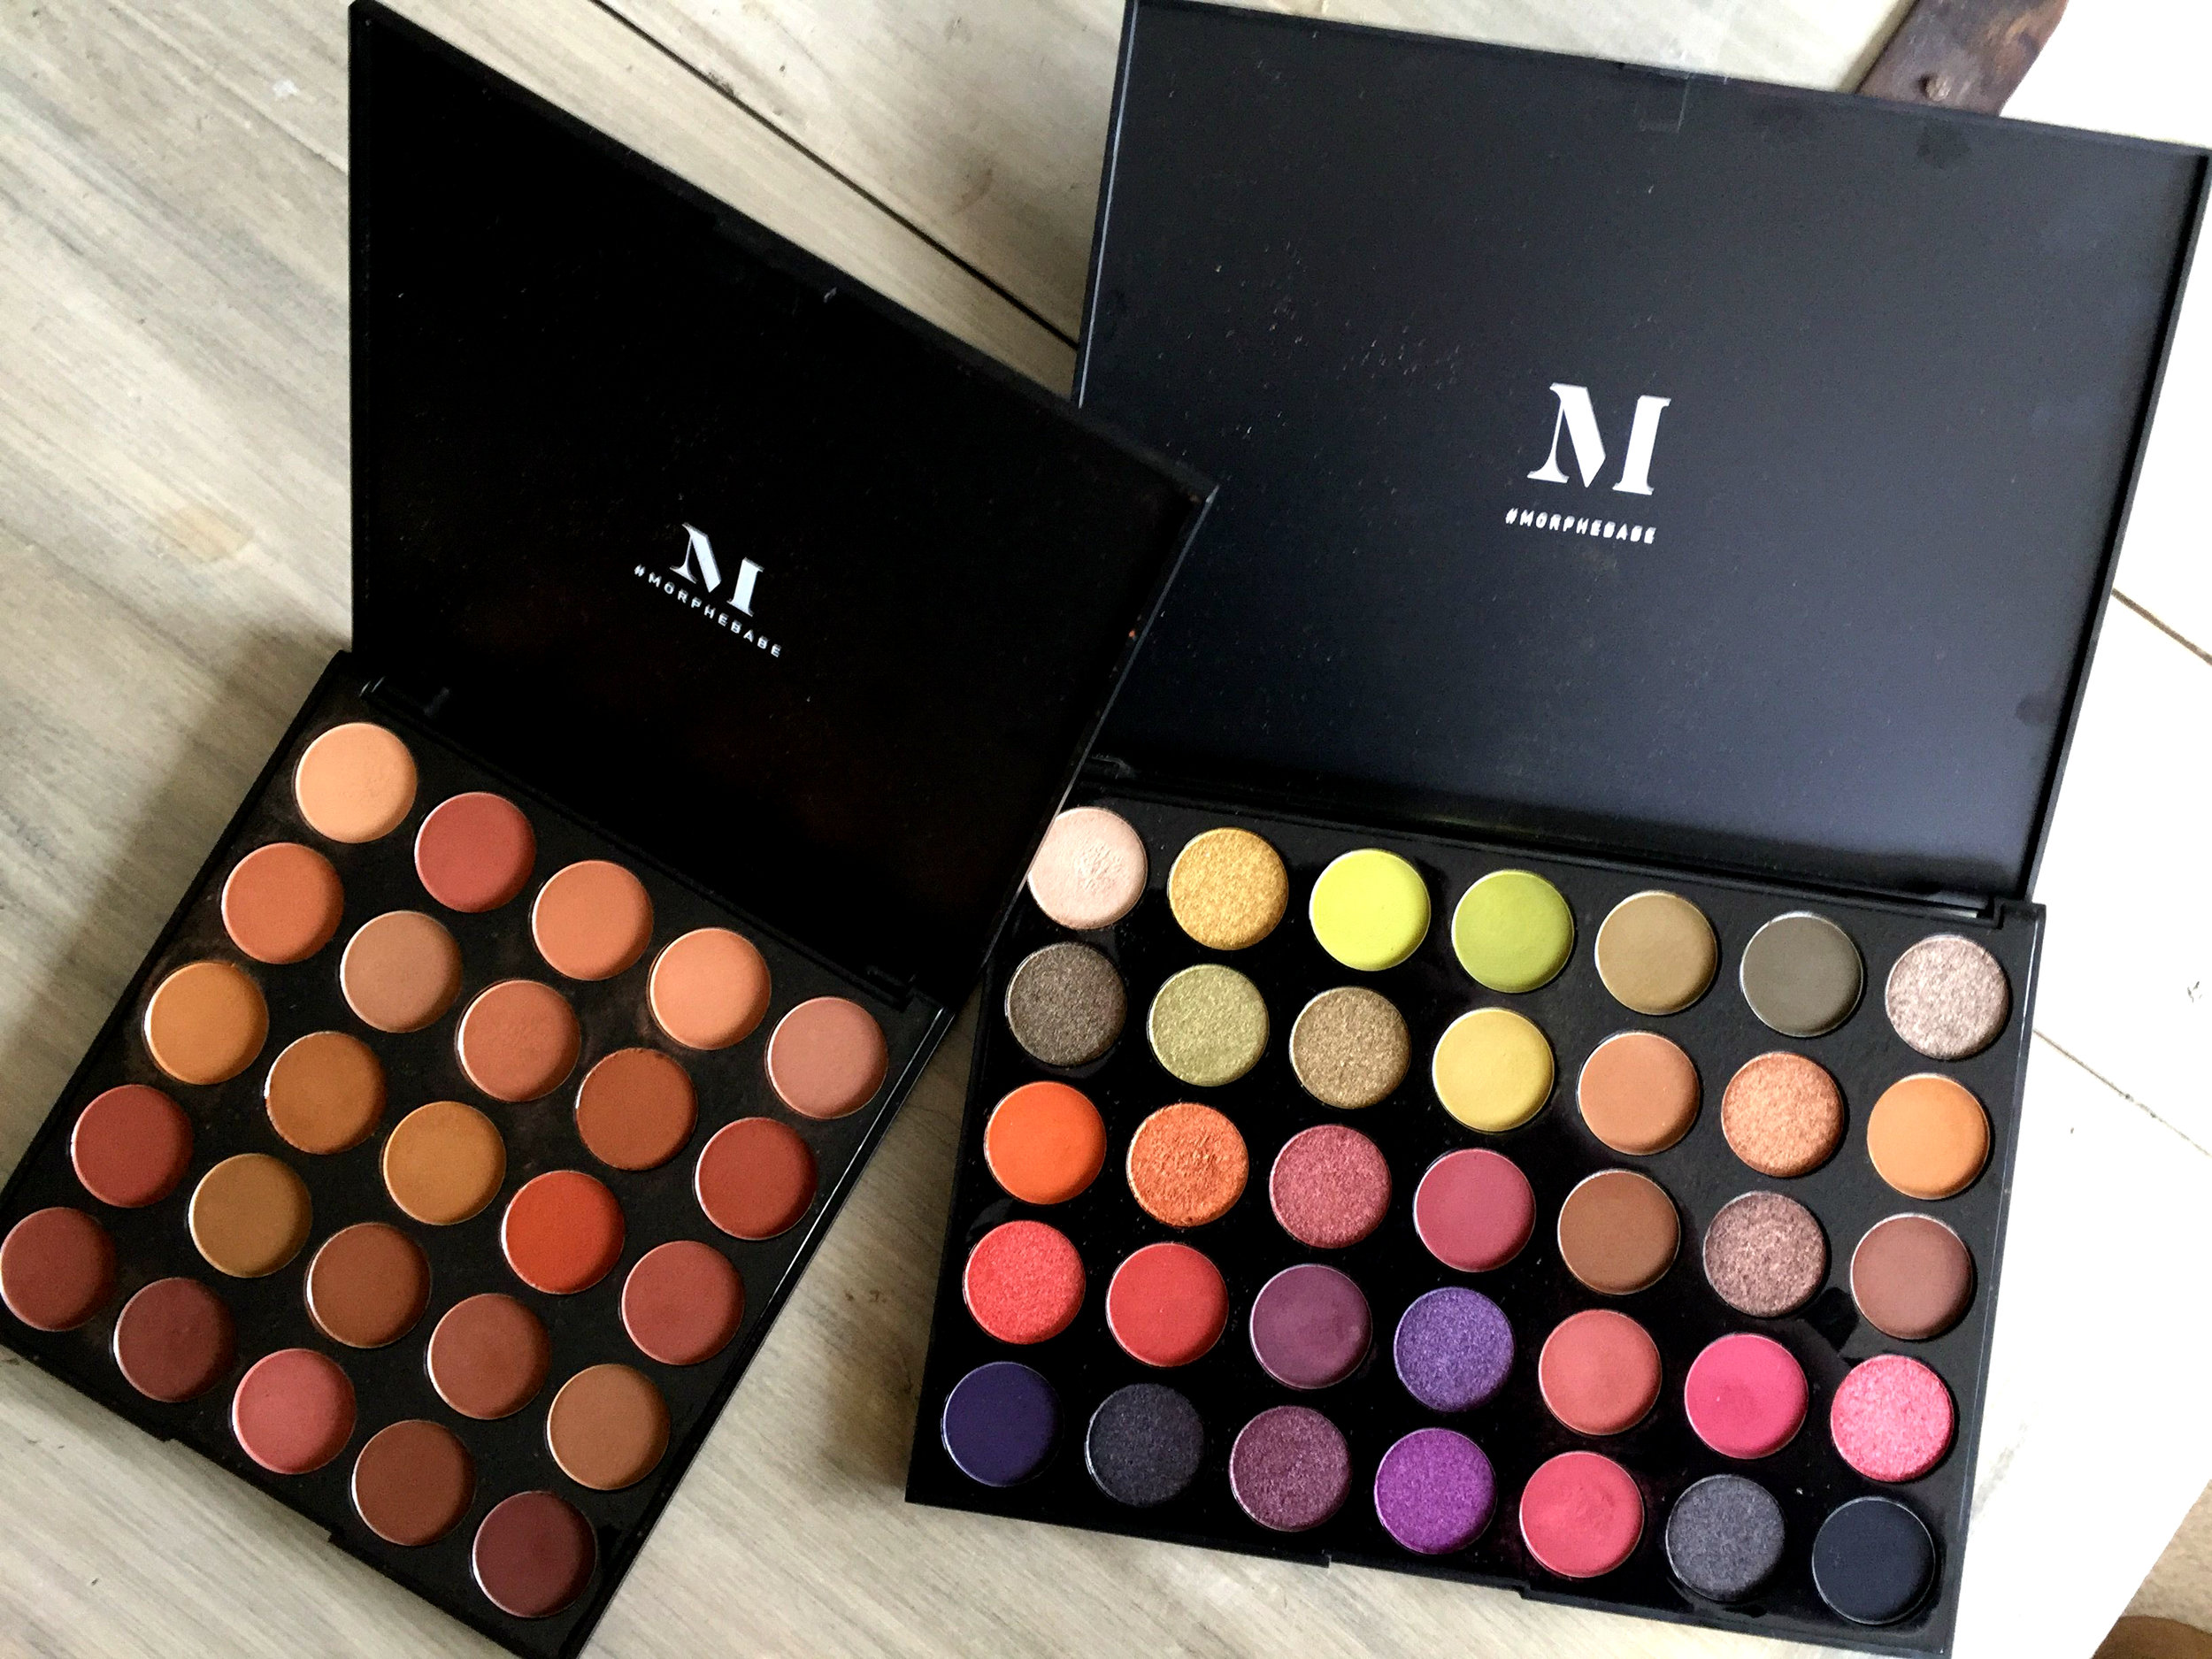 followed makeup tutorials on youtube, youtube makeup tutorial, makeup tutorial using morphe palette, morphe 60 shades of slay review, morphe makeup product review